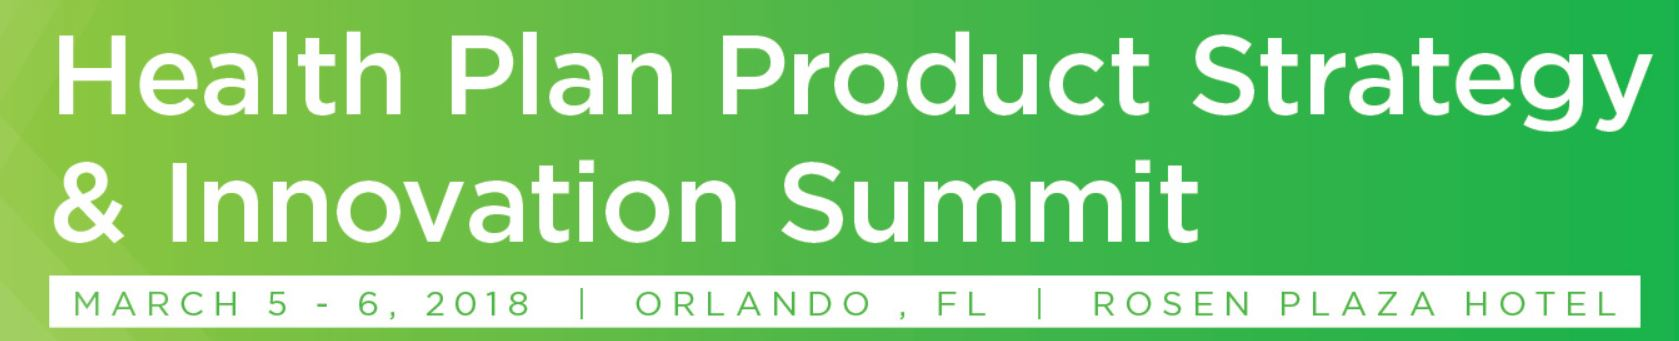 Health Plan Product Strategy & Innovation Summit